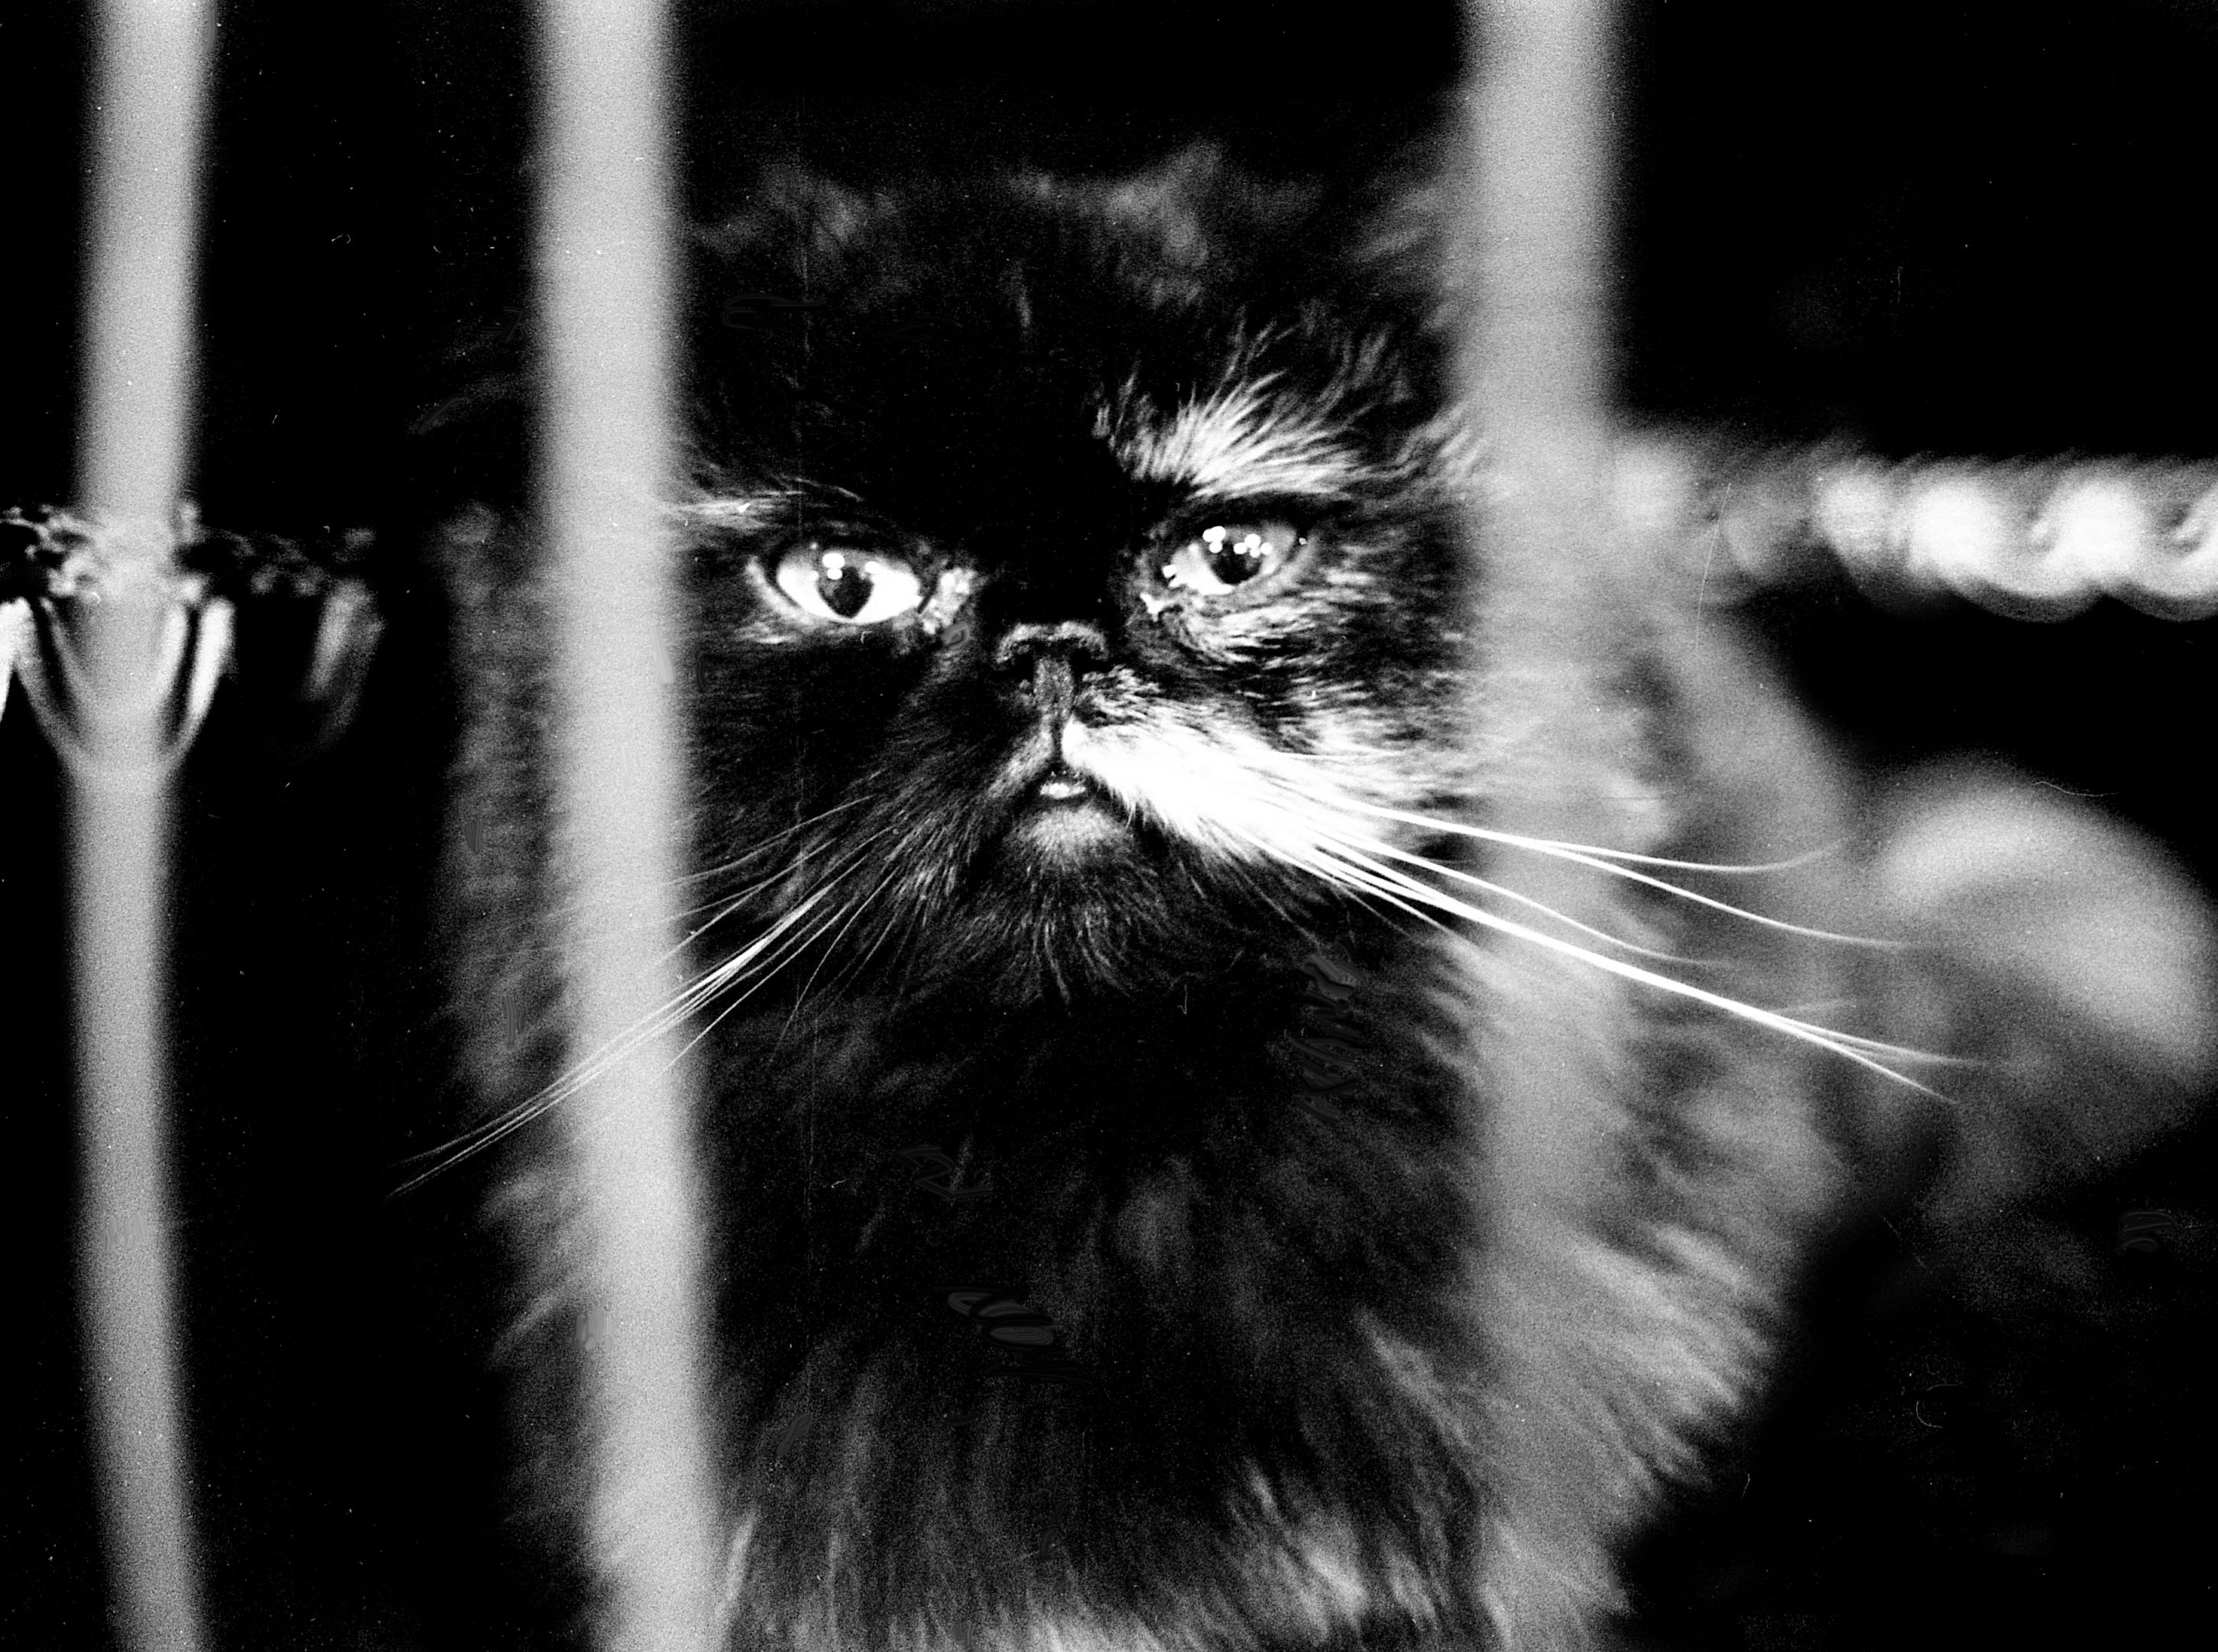 This fierce Persian waits the competition during Cat Show at the Tennessee State Fairgrounds on April 7, 1979. The event is sponsored by the American Cat Club and Nashville's Crown Cat Club.